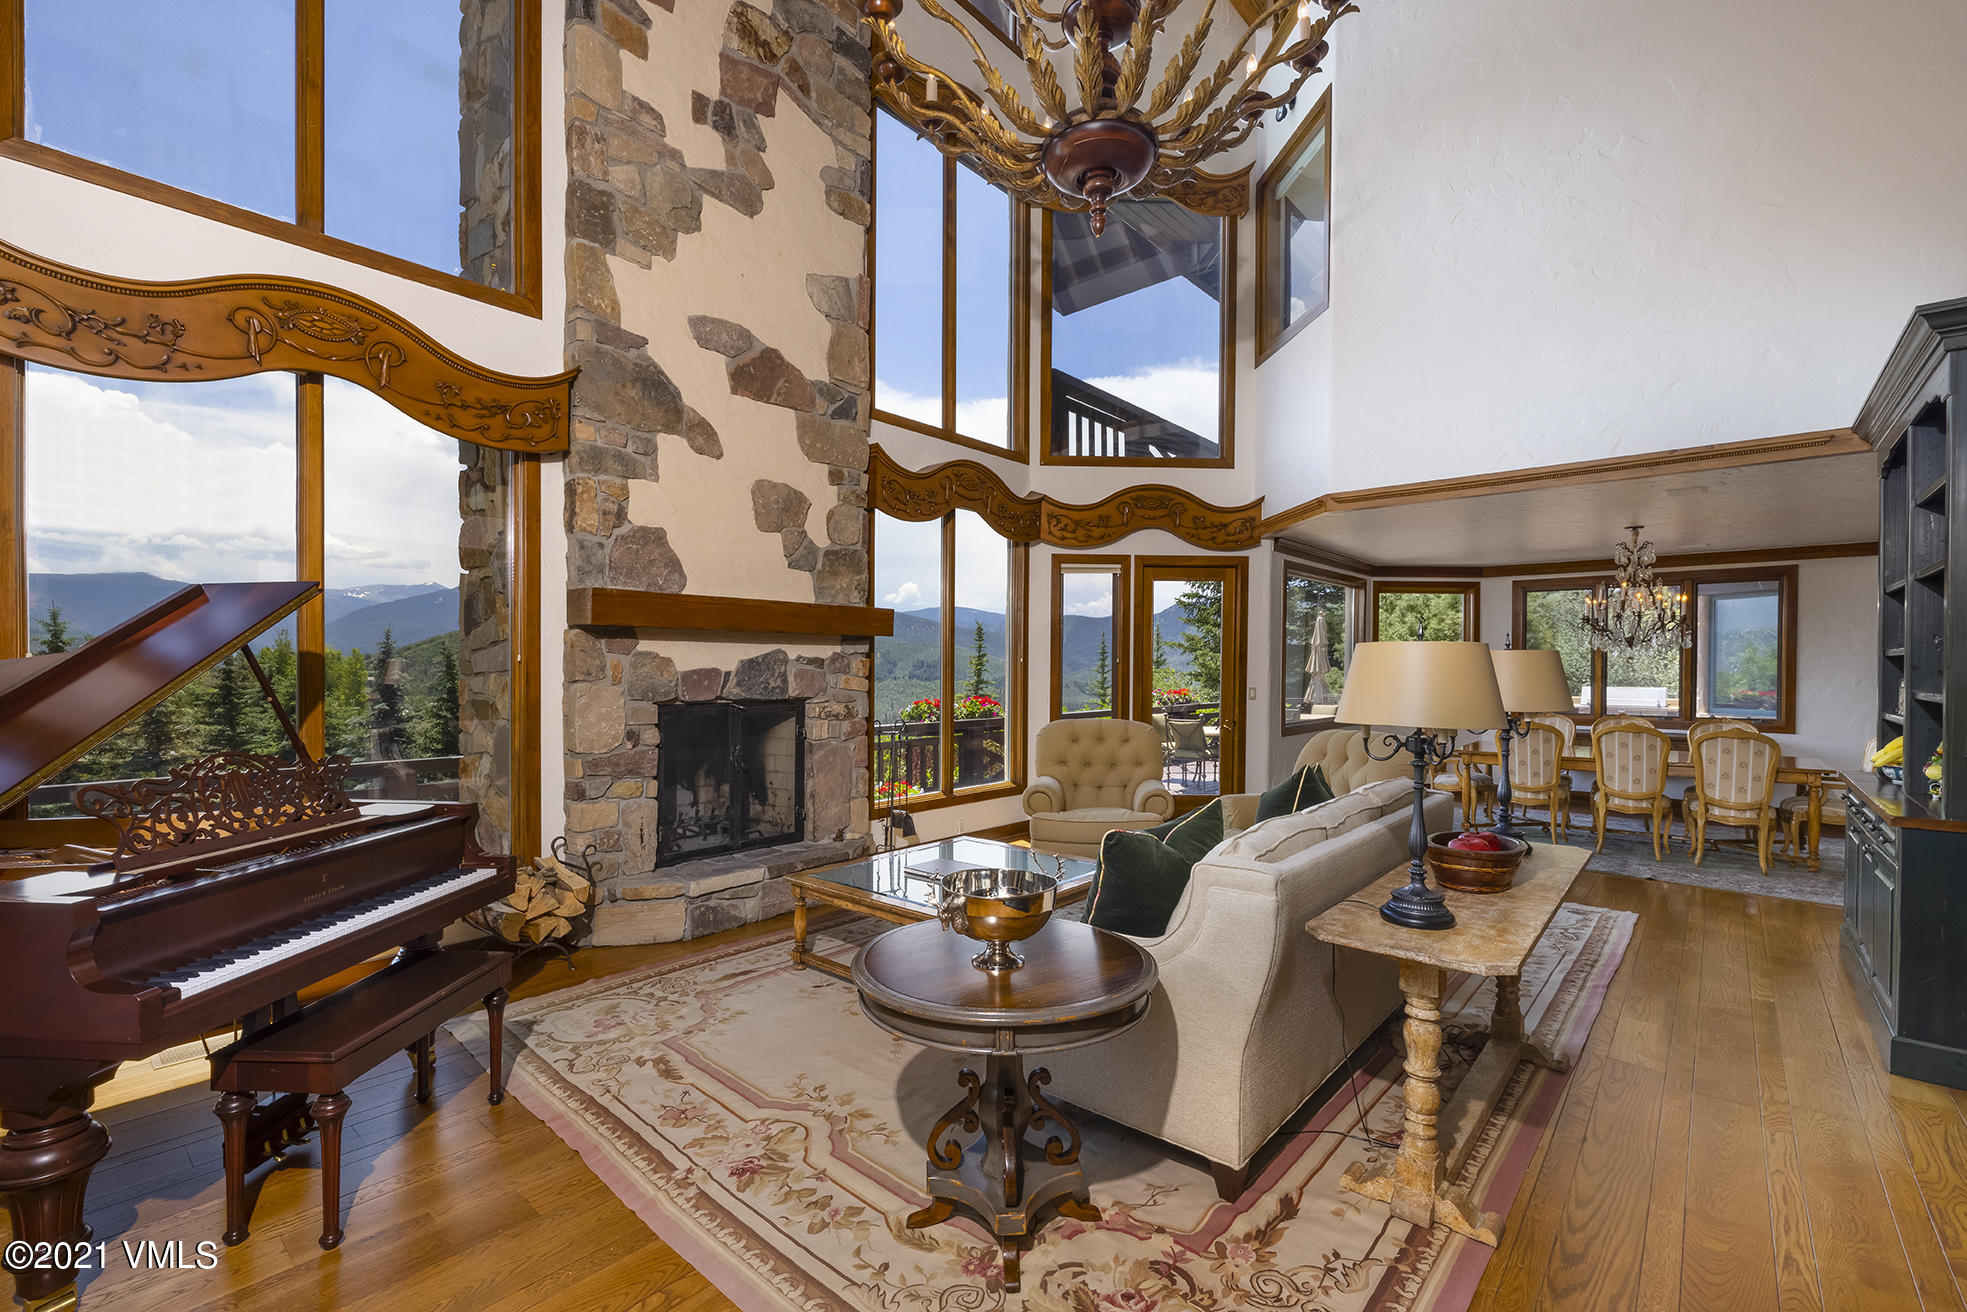 Opportunity to own this iconic home atop The Divide at Cordillera. Custom-built for the original developer of Cordillera, Felix Posen, and then owned by Kathie Lee Gifford. Original home can be seen featured in the Kathie Lee 'Home for Christmas' special. Homesite was hand-picked by Mr. Posen for its magnificent 360-degree views of the Gore Range, Sawatch Range, Flattop Mountain as well as New York Mountain. This thoughtful and comfortable floorplan provides en-suite bathrooms for each bedroom, decks off each of the six main level bedrooms, spacious upgraded country kitchen, extra lofted space, and stunning views from all rooms. Entry-level is home to two primary suites. The east primary suite is a corner room with big views, fireplace, private deck, high vaulted ceilings, his/her bathrooms, and closets, and sitting area or office. Additional primary suite is a corner room located on the west end of the home with gorgeous views, wrap-around deck, walk-in closet and bathroom, and sauna access. Large welcoming great room frames the picturesque views of the surrounding mountain ranges and features high vaulted ceilings, a wood-burning fireplace, and adjoined formal dining room creating a perfect space for warm and memorable gatherings. Additional entertaining spaces include a saloon-style bar area with fireplace; oversized family room; den and billiards room, all of which provide for easy access to the outdoors. Expansive deck and patio along the southern side of the home with outdoor hot tub, large pool, and fireplace to enjoy great Colorado days and evenings. Recently installed new tile roof. Extensive landscaping surrounds this special property with large acreage; 3-car garage. Perfect for one looking to enjoy a more traditional home with cozy comforts and a mountain chalet atmosphere. Private gated community with security and many amenities plus availability to join one of the best golf clubs that the Vail Valley has to offer. Timeless home sold furnished.